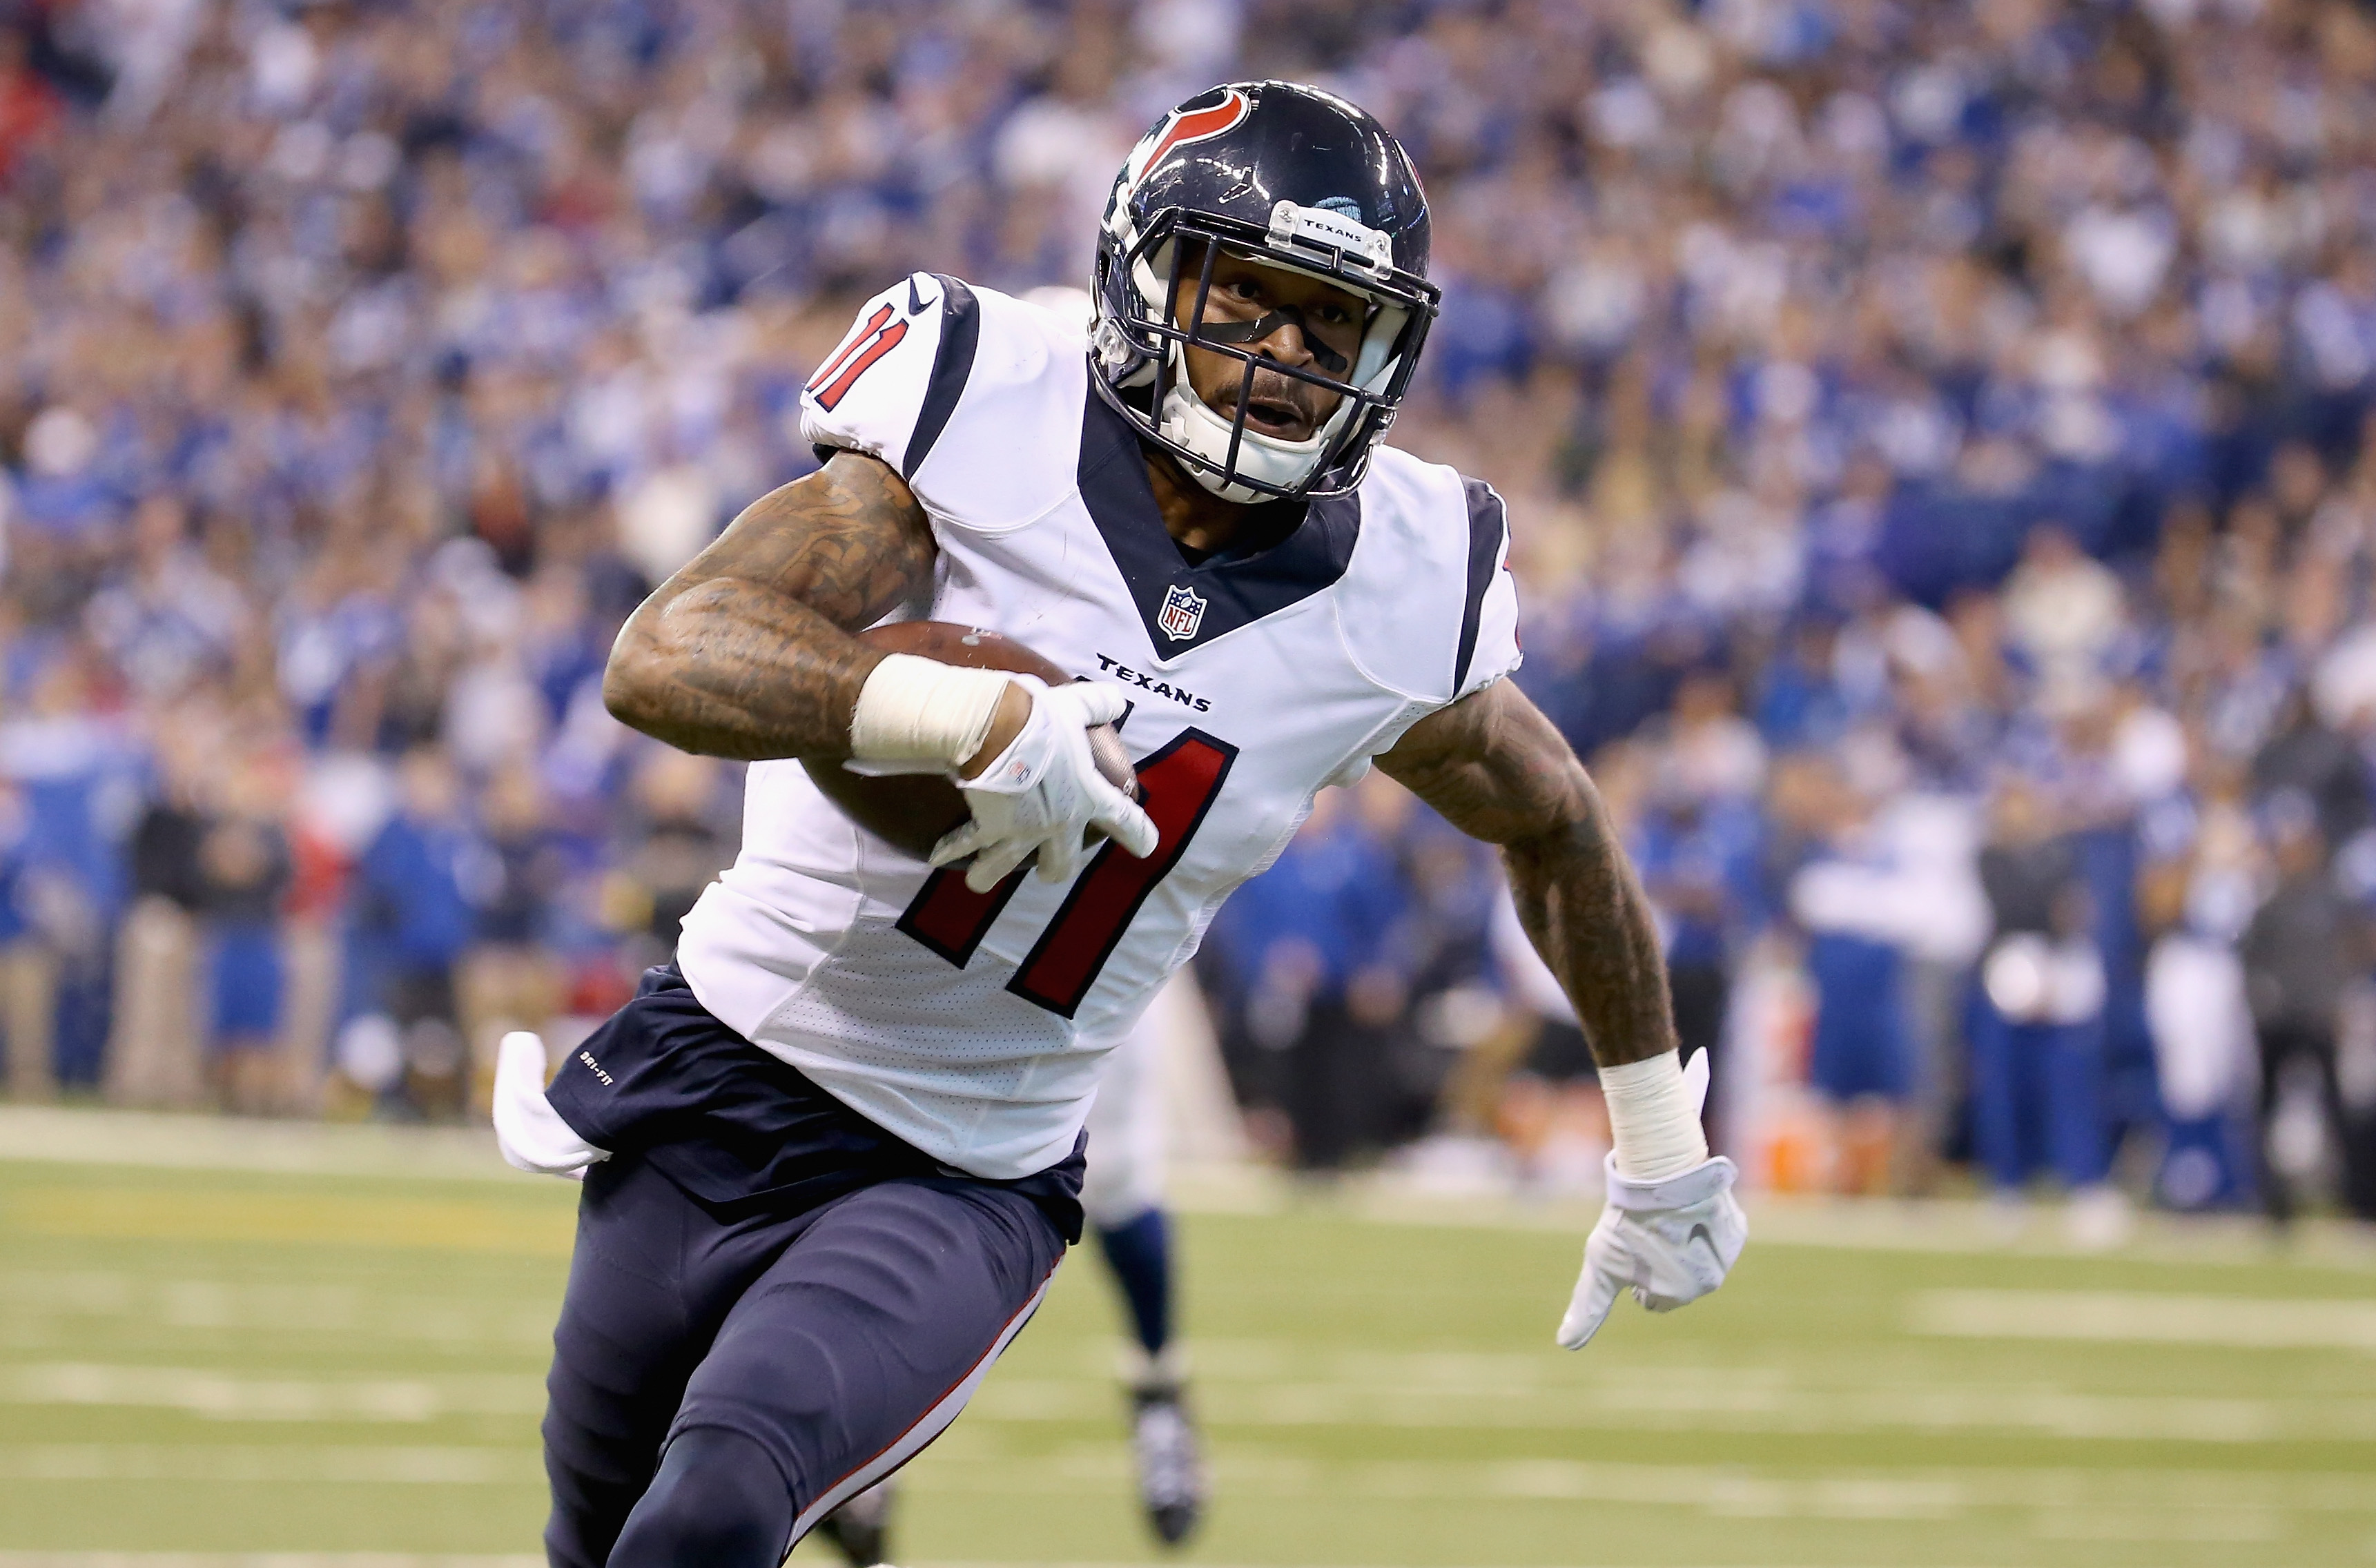 titans, texans, stream, odds, live, watch, prediction, spread, online, channel, kickoff, time